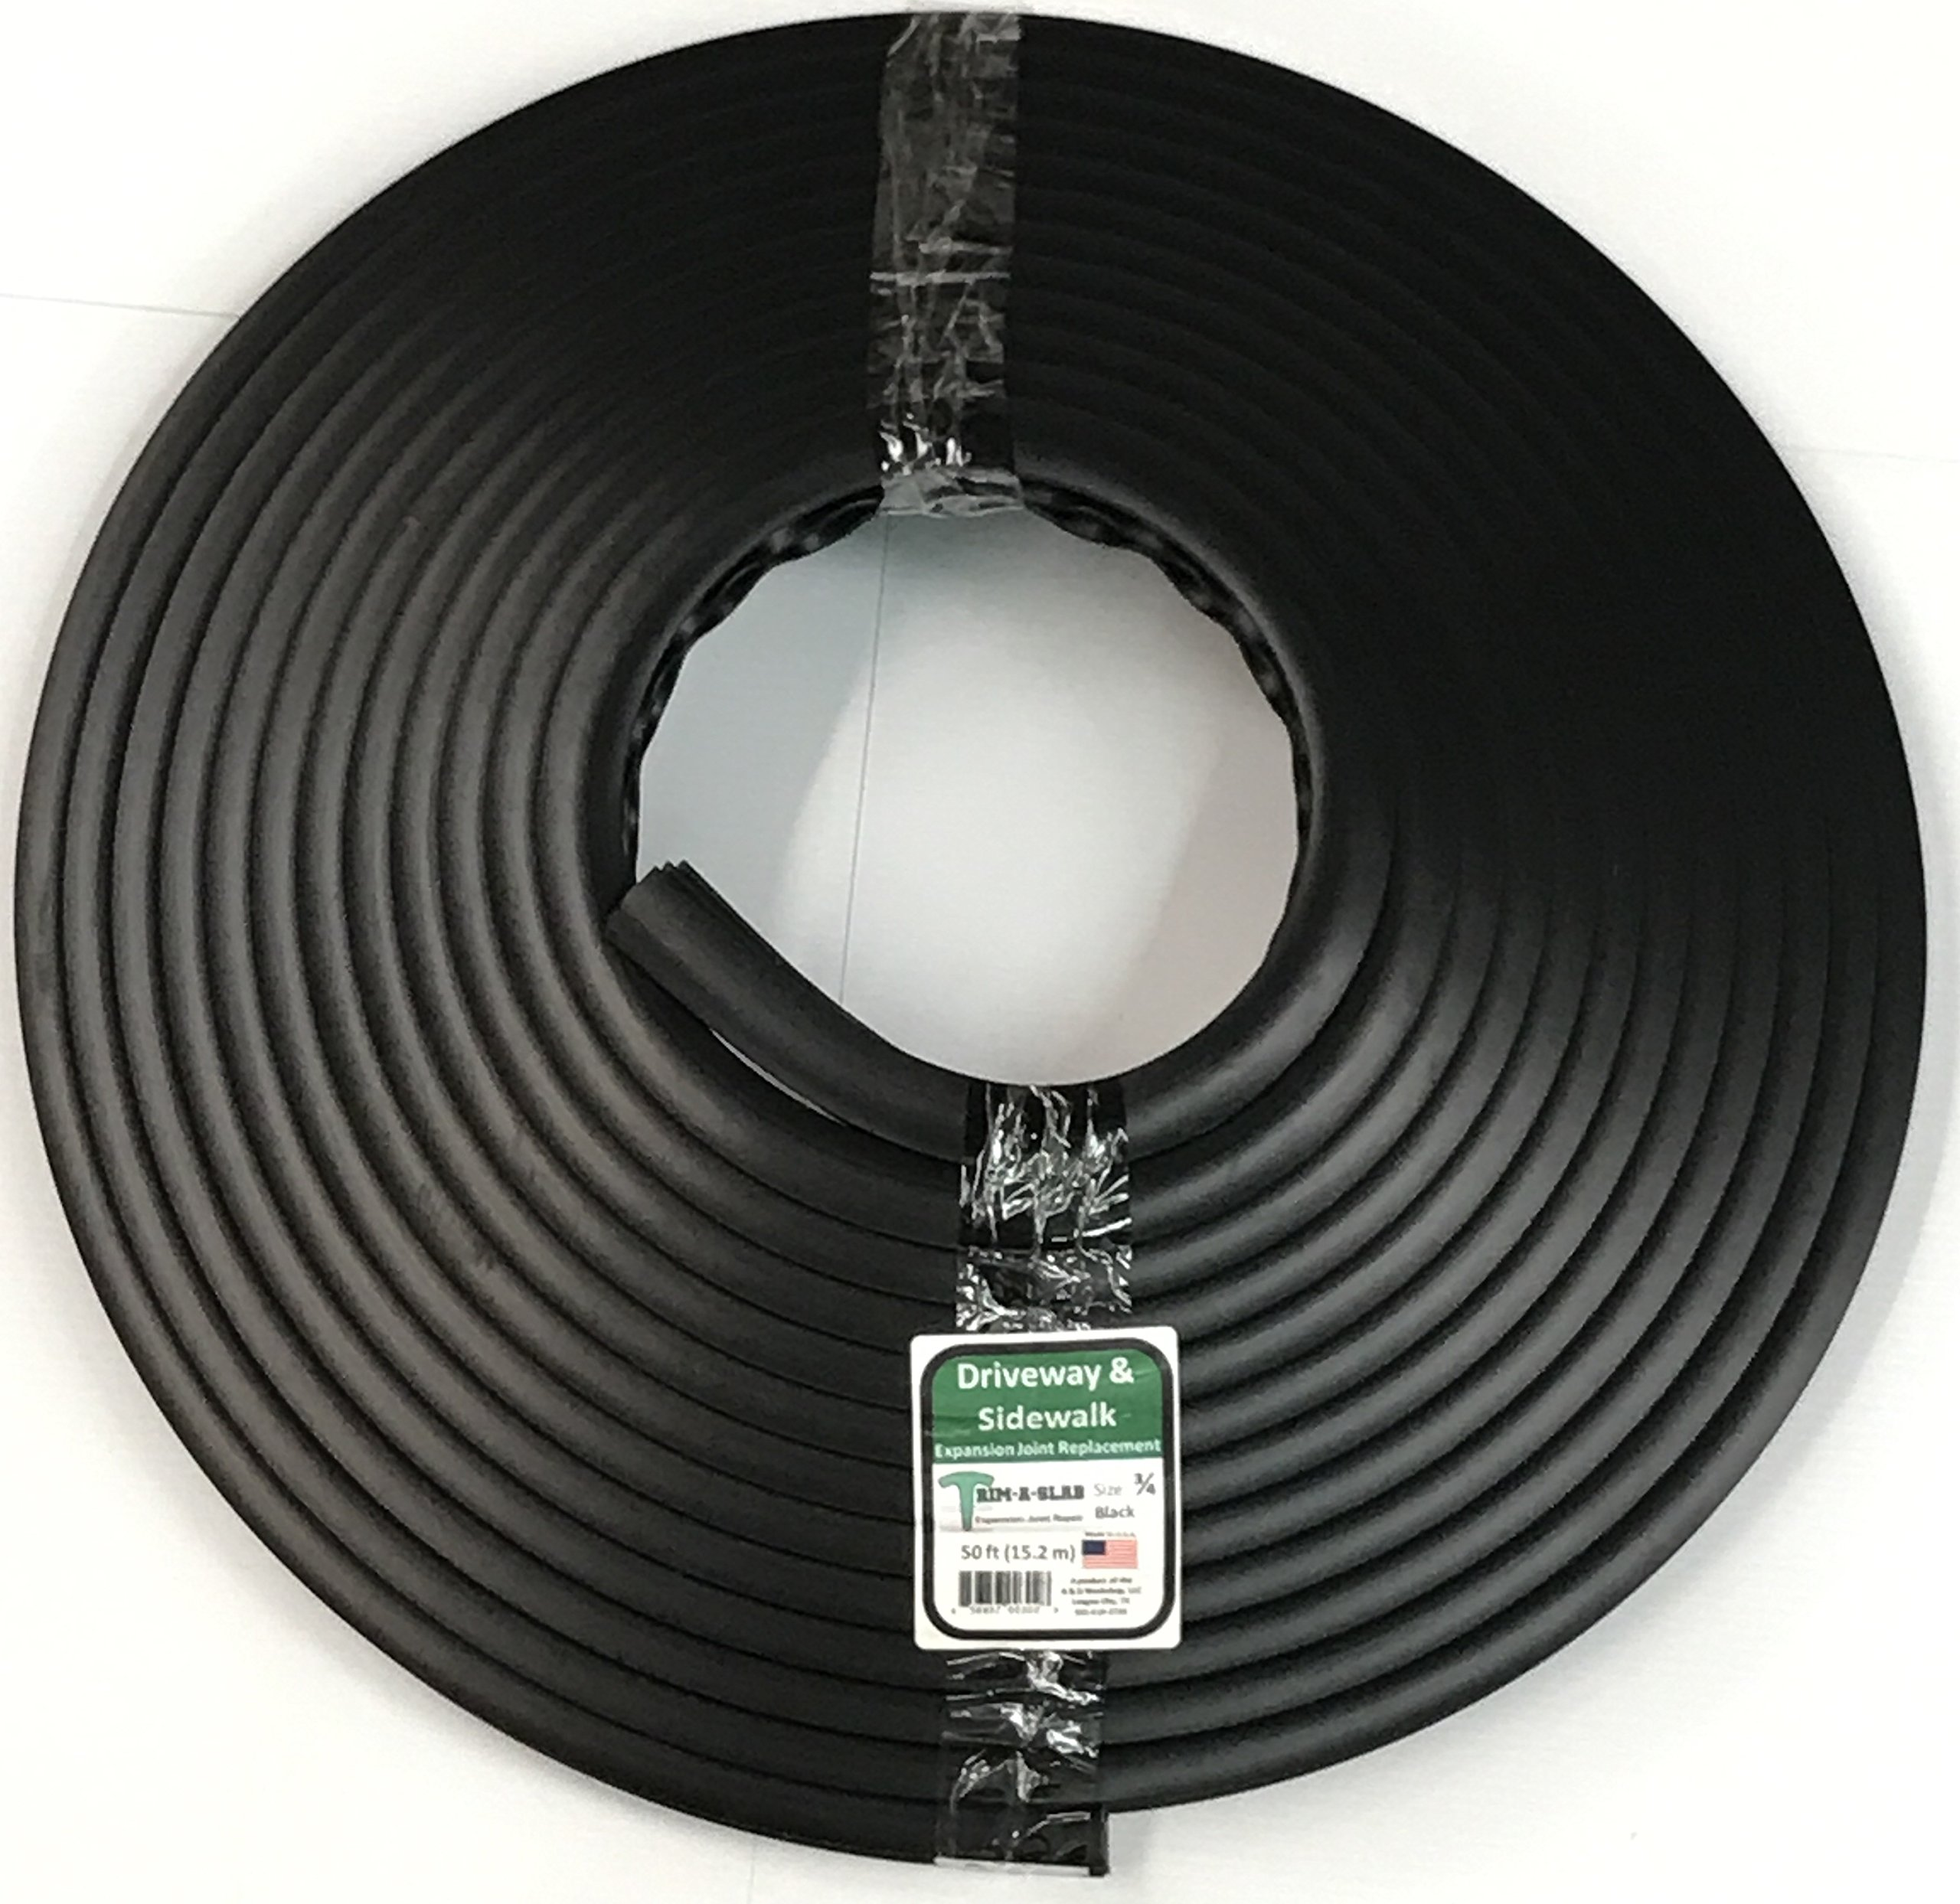 Trim-A-Slab (Black) Expansion Joint Repair/Replace Material - 3/4'' x 50 Linear feet (15.2m)